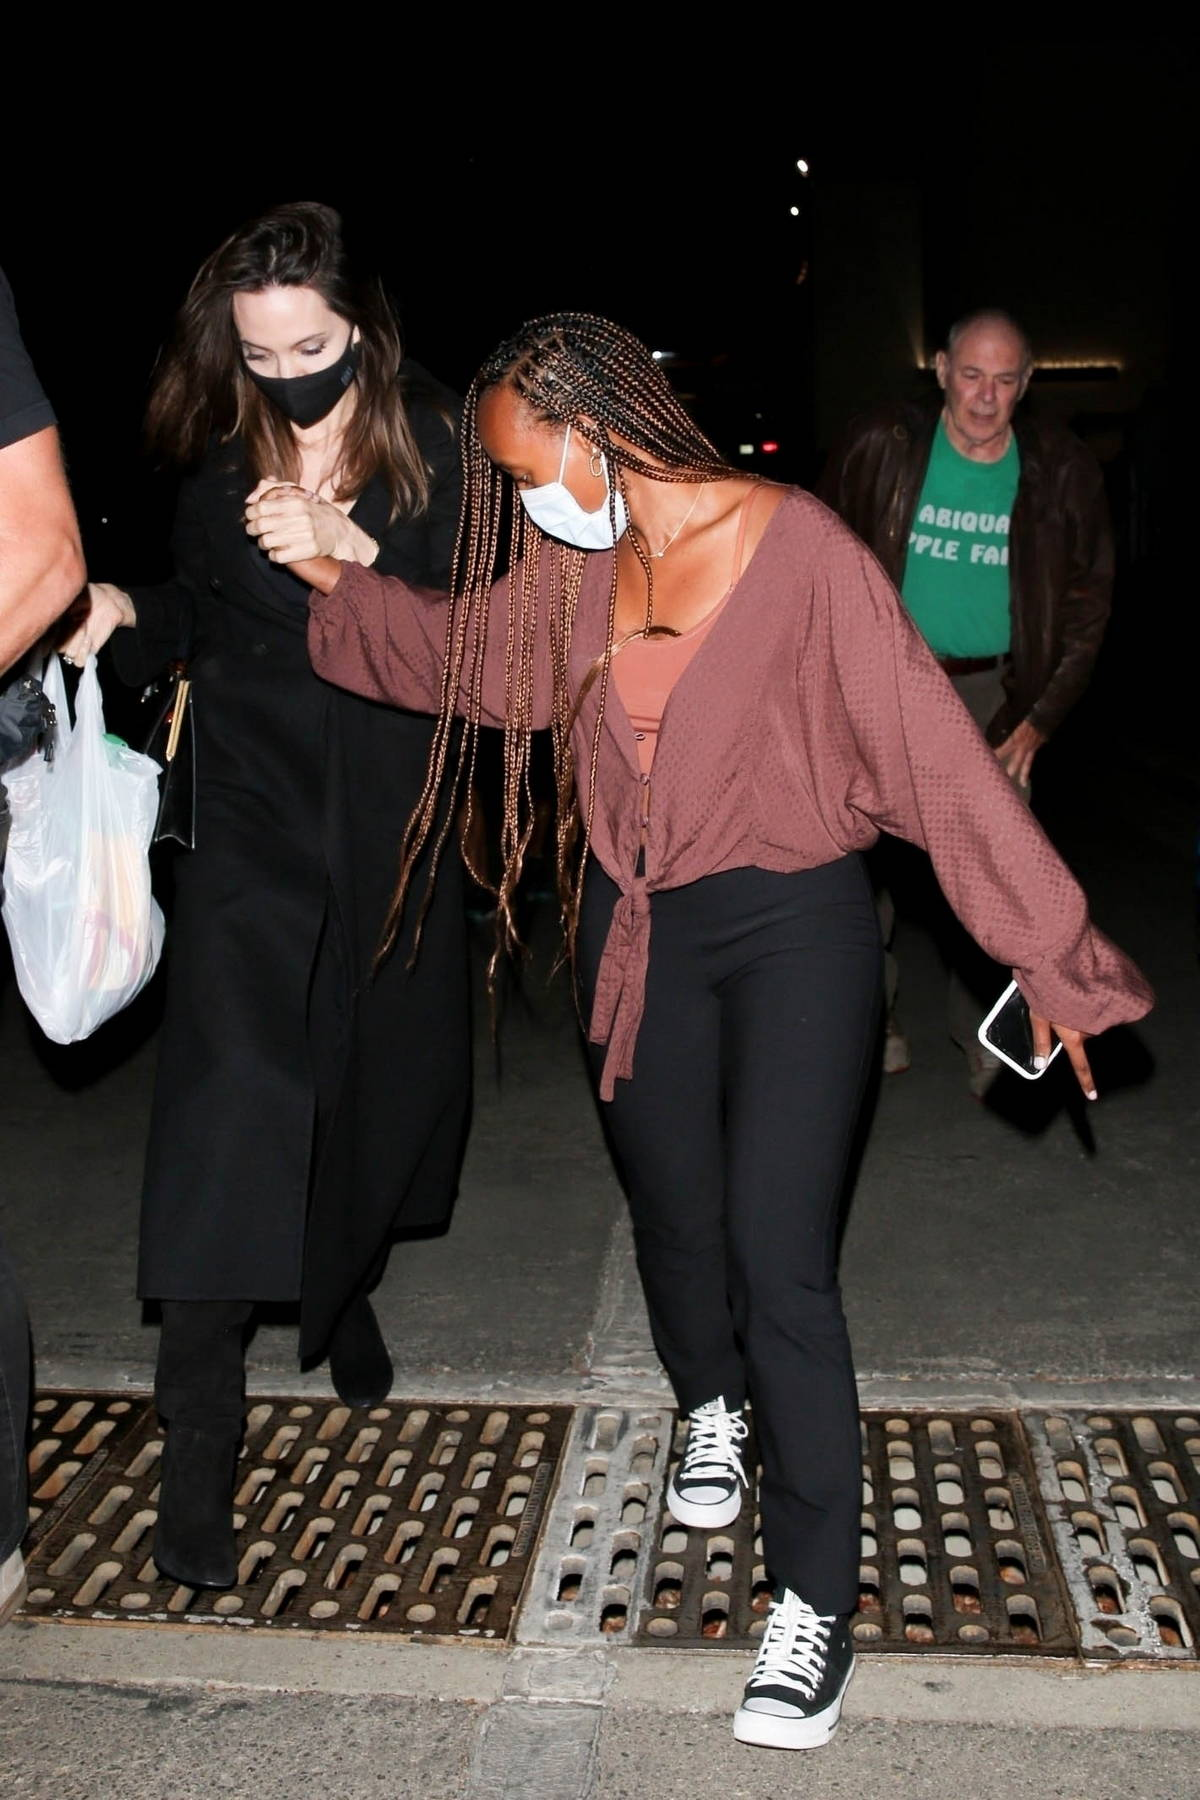 Angelina Jolie and her daughter Zahara seen leaving a Ziggy Marley concert at the Hollywood Bowl in Hollywood, California